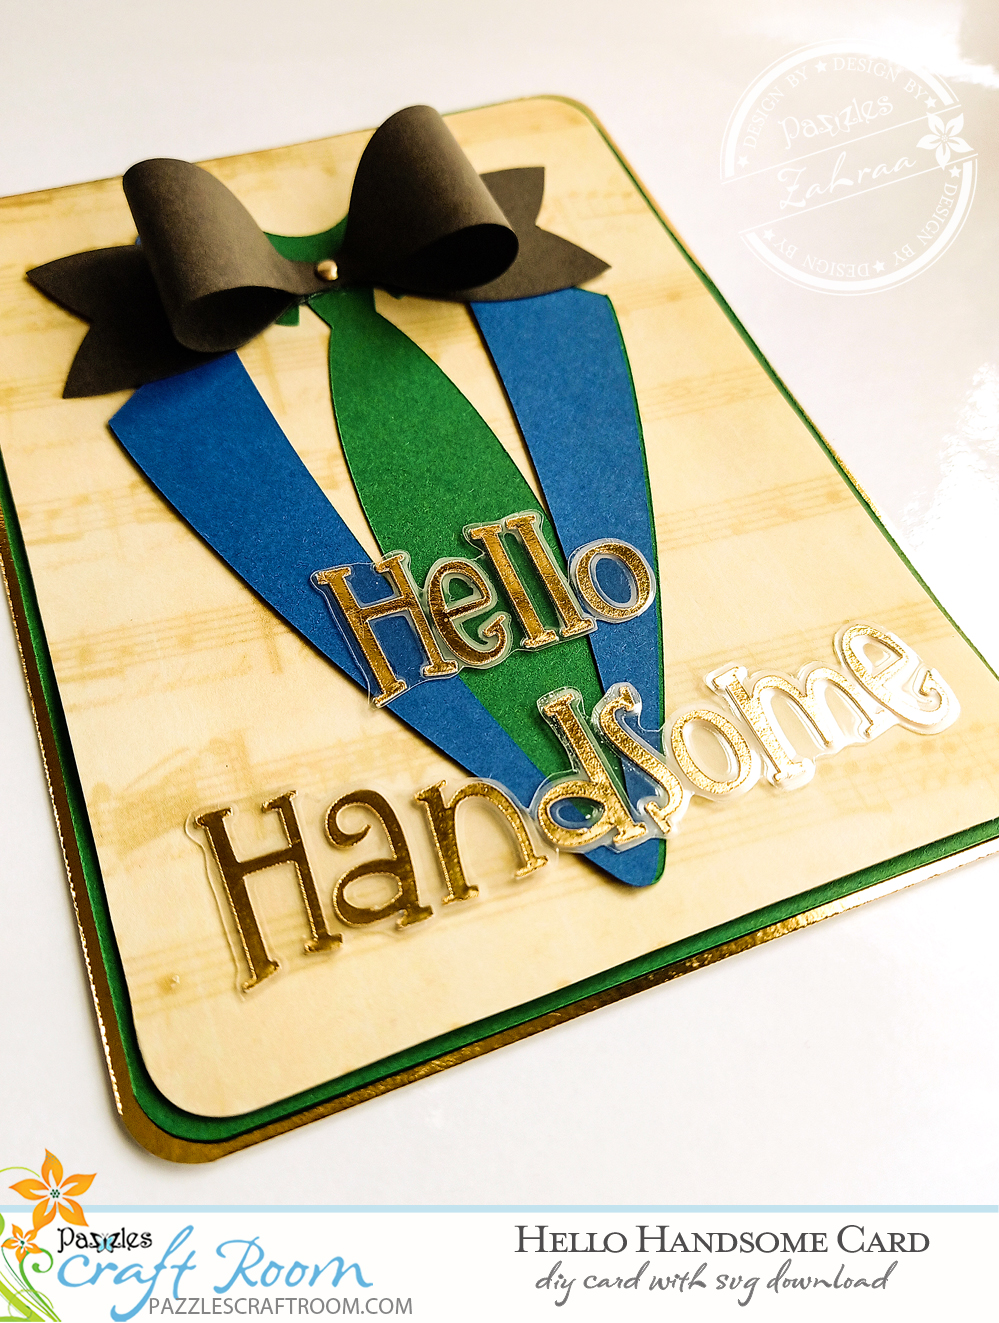 Pazzles DIY Hello Handsome Card with instant SVG download. Instant SVG download compatible with all major electronic cutters including Pazzles Inspiration, Cricut, and Silhouette Cameo. Design by Zahraa Darweesh.